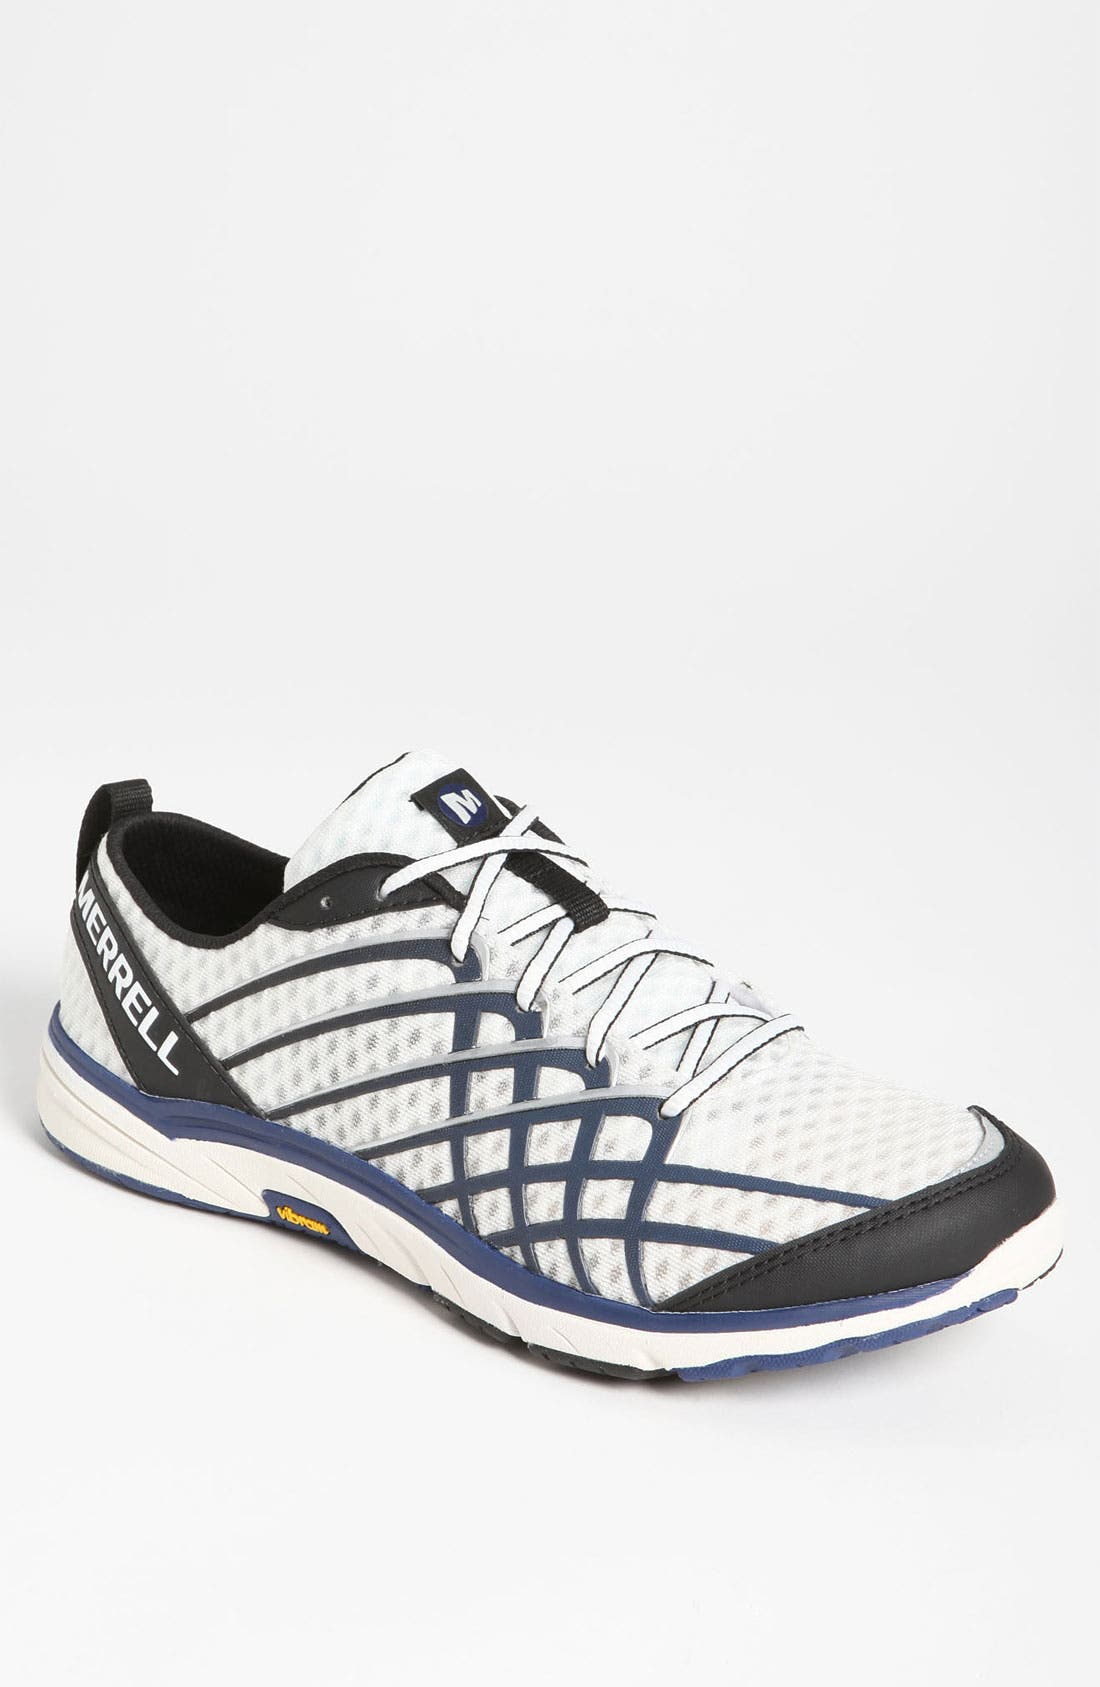 Alternate Image 1 Selected - Merrell 'Bare Access' Running Shoe (Men)